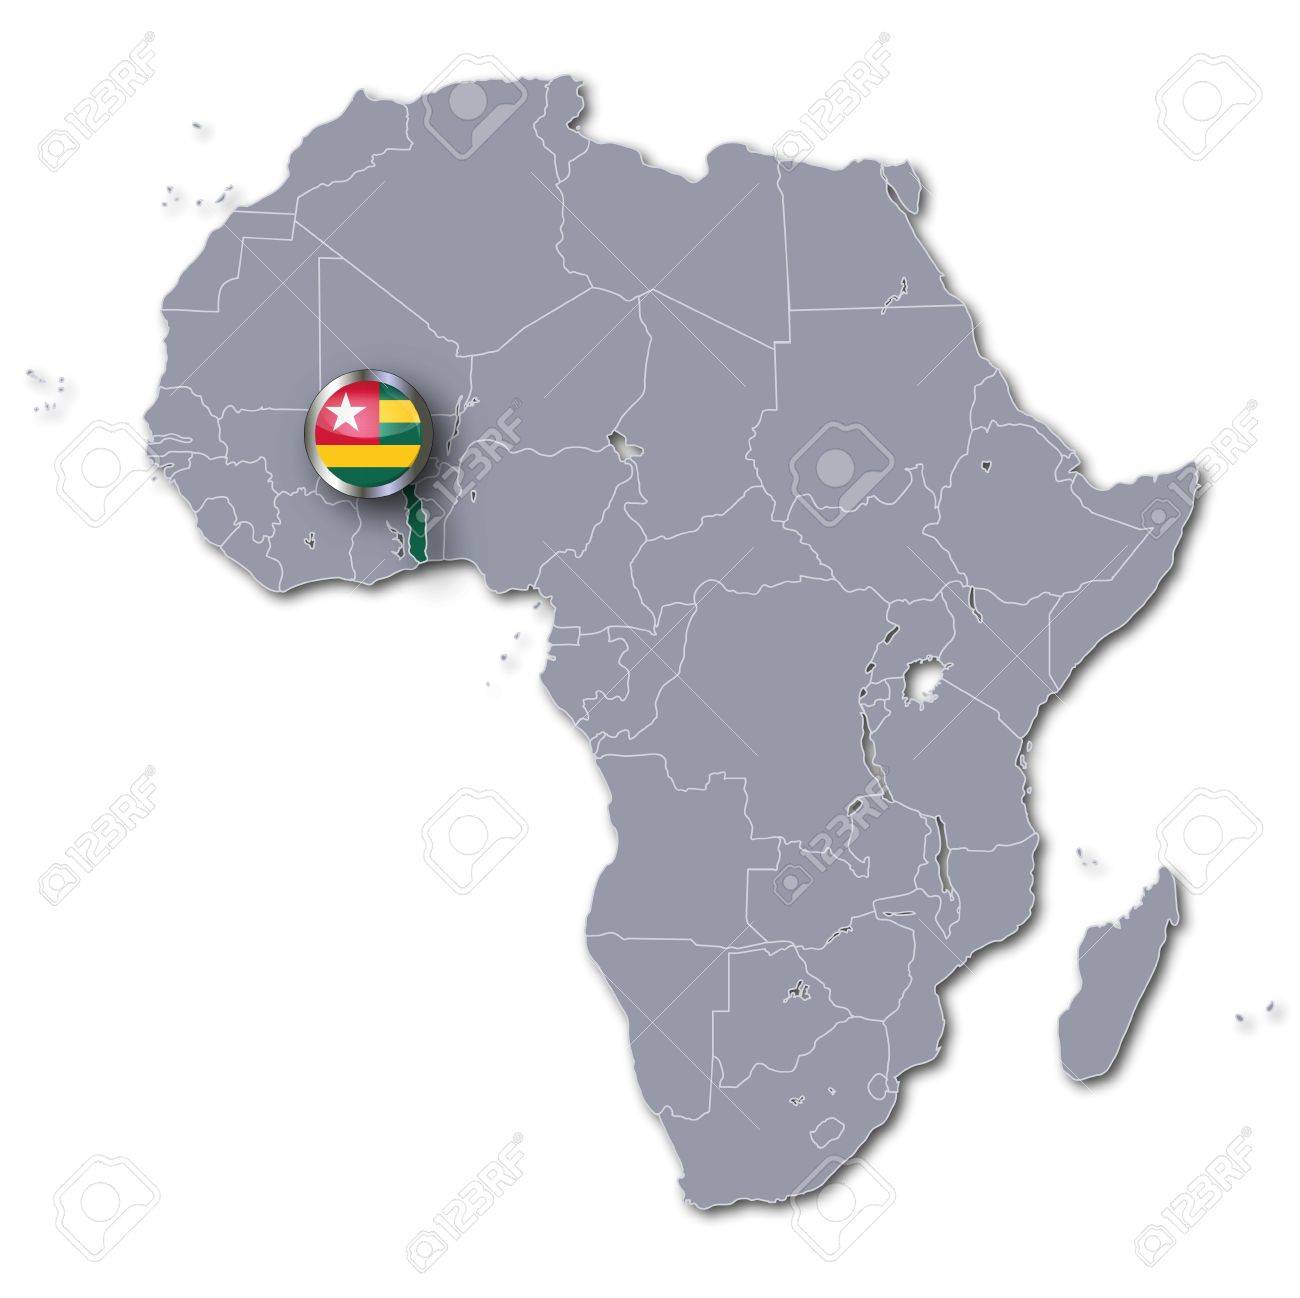 Africa map togo stock photo picture and royalty free image image africa map togo stock photo 15993237 gumiabroncs Image collections